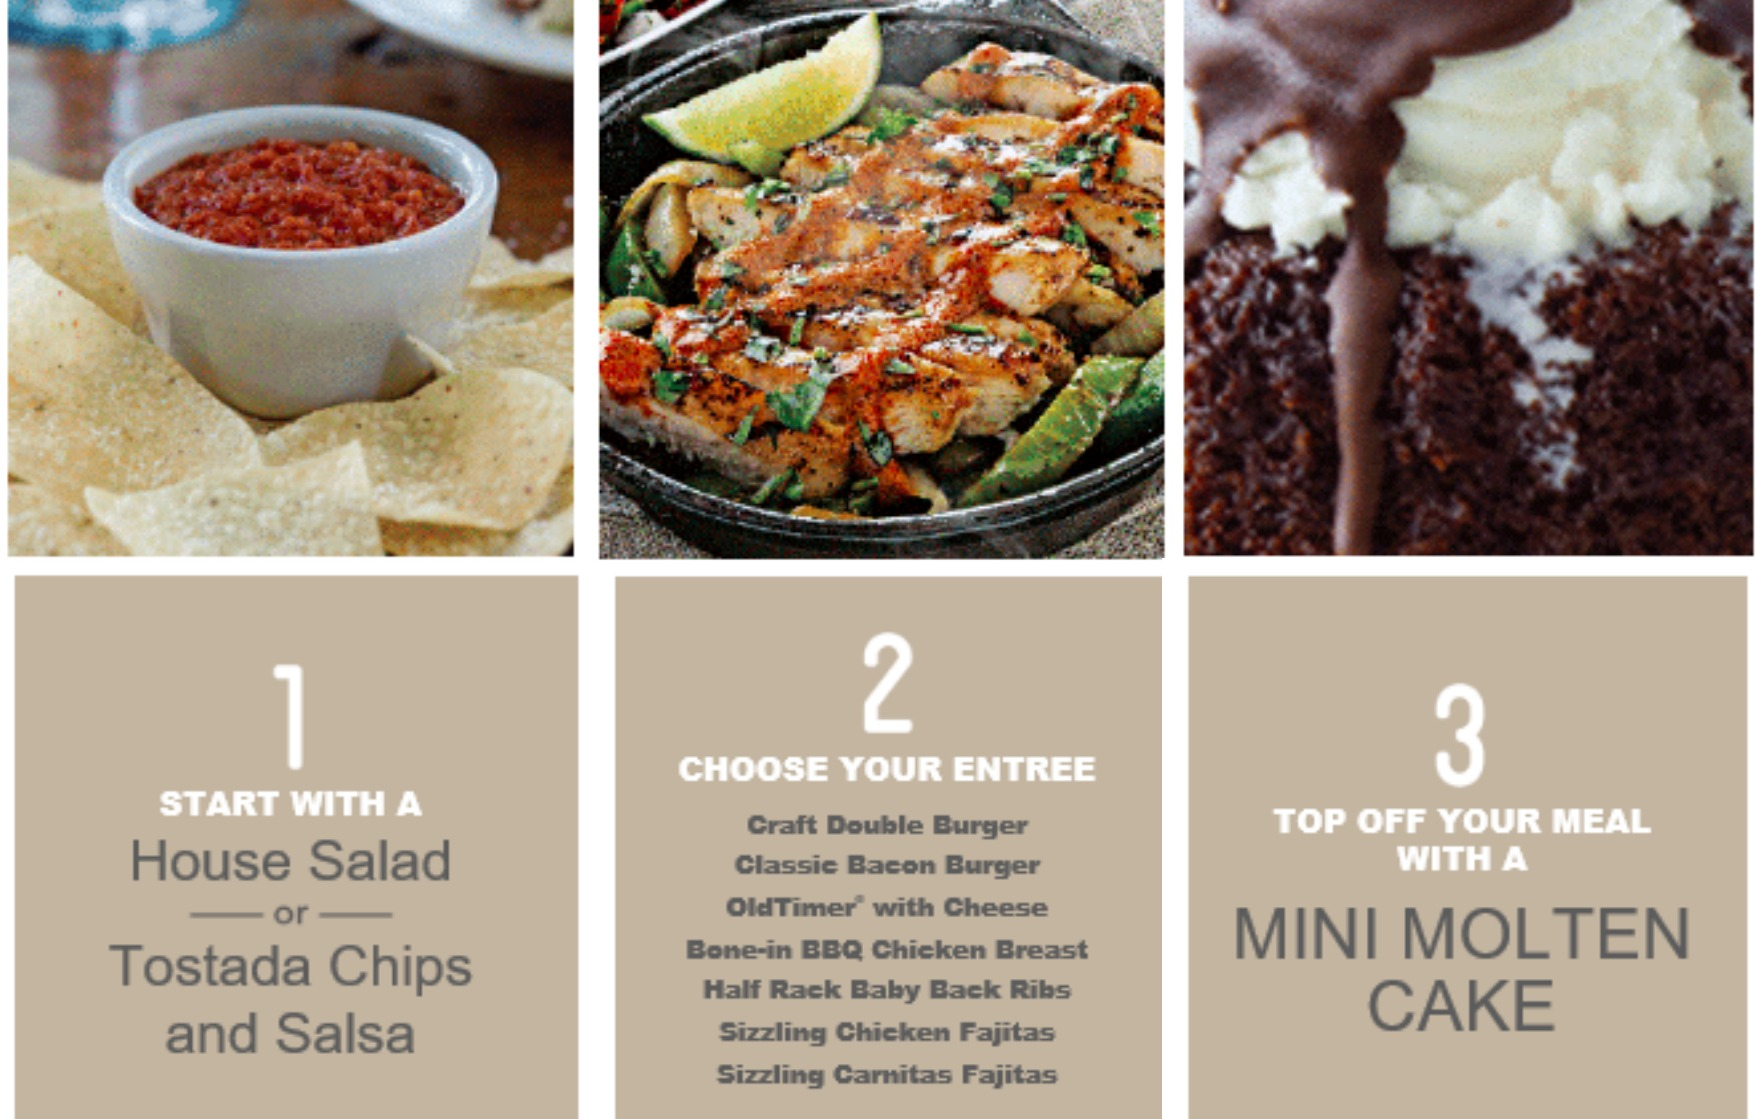 image relating to Chili's Menu With Prices Printable titled Chilis Bar Grill: 3-Class Dinner Just $10 (Incorporates